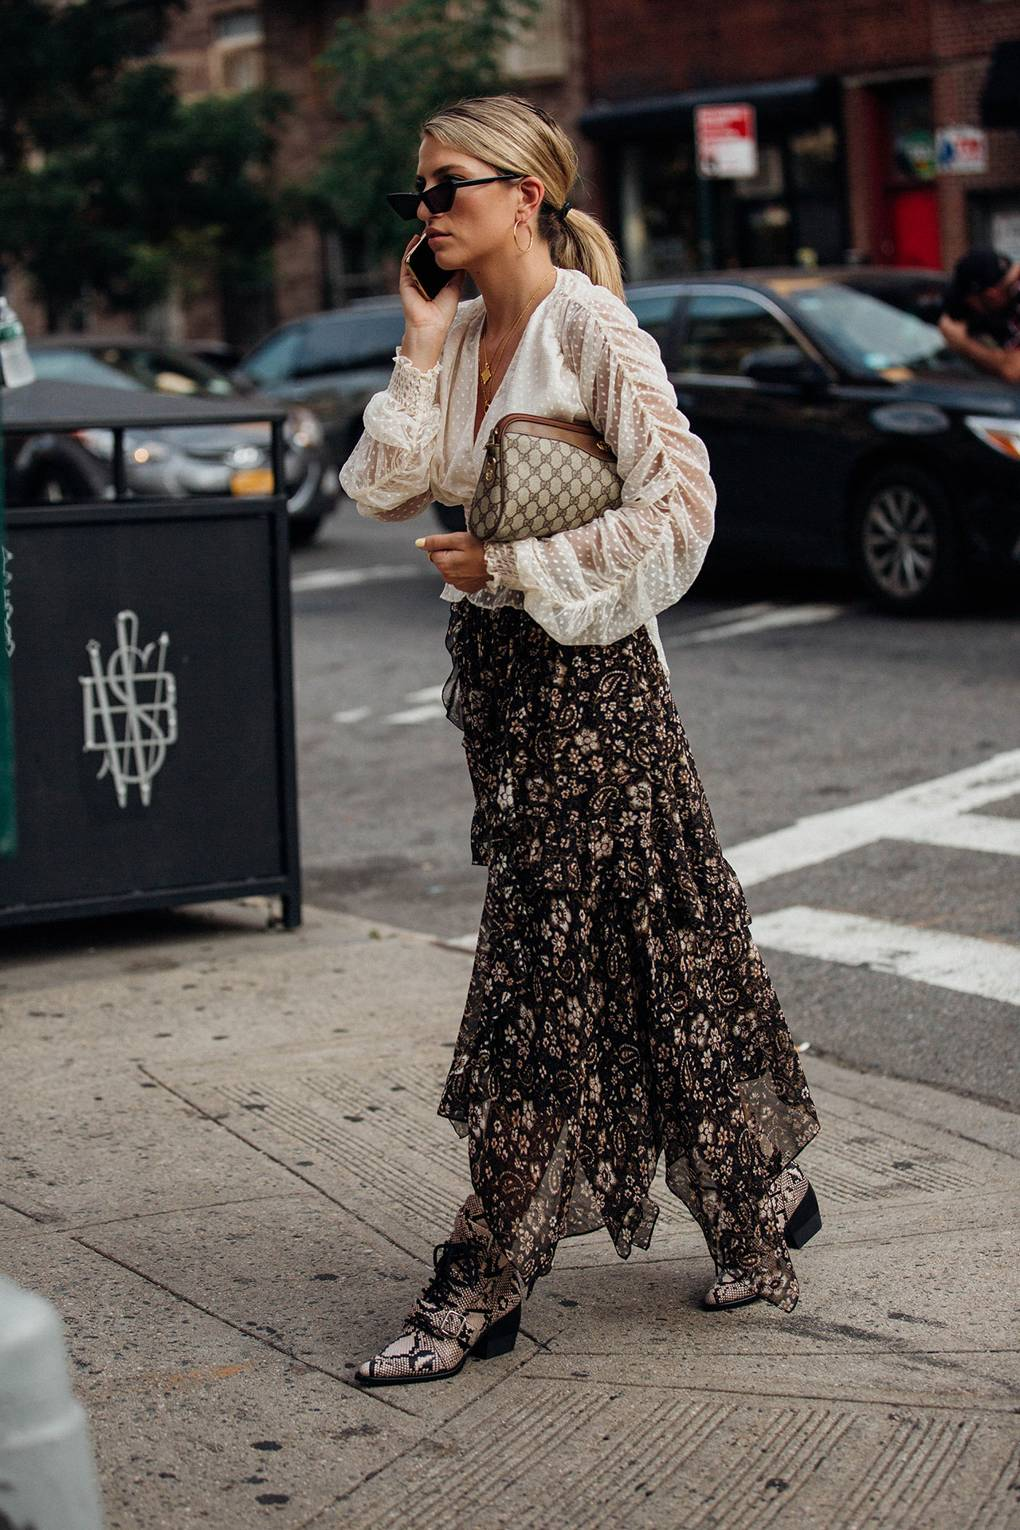 Spring 2019 Trend #4: Maxi Skirts